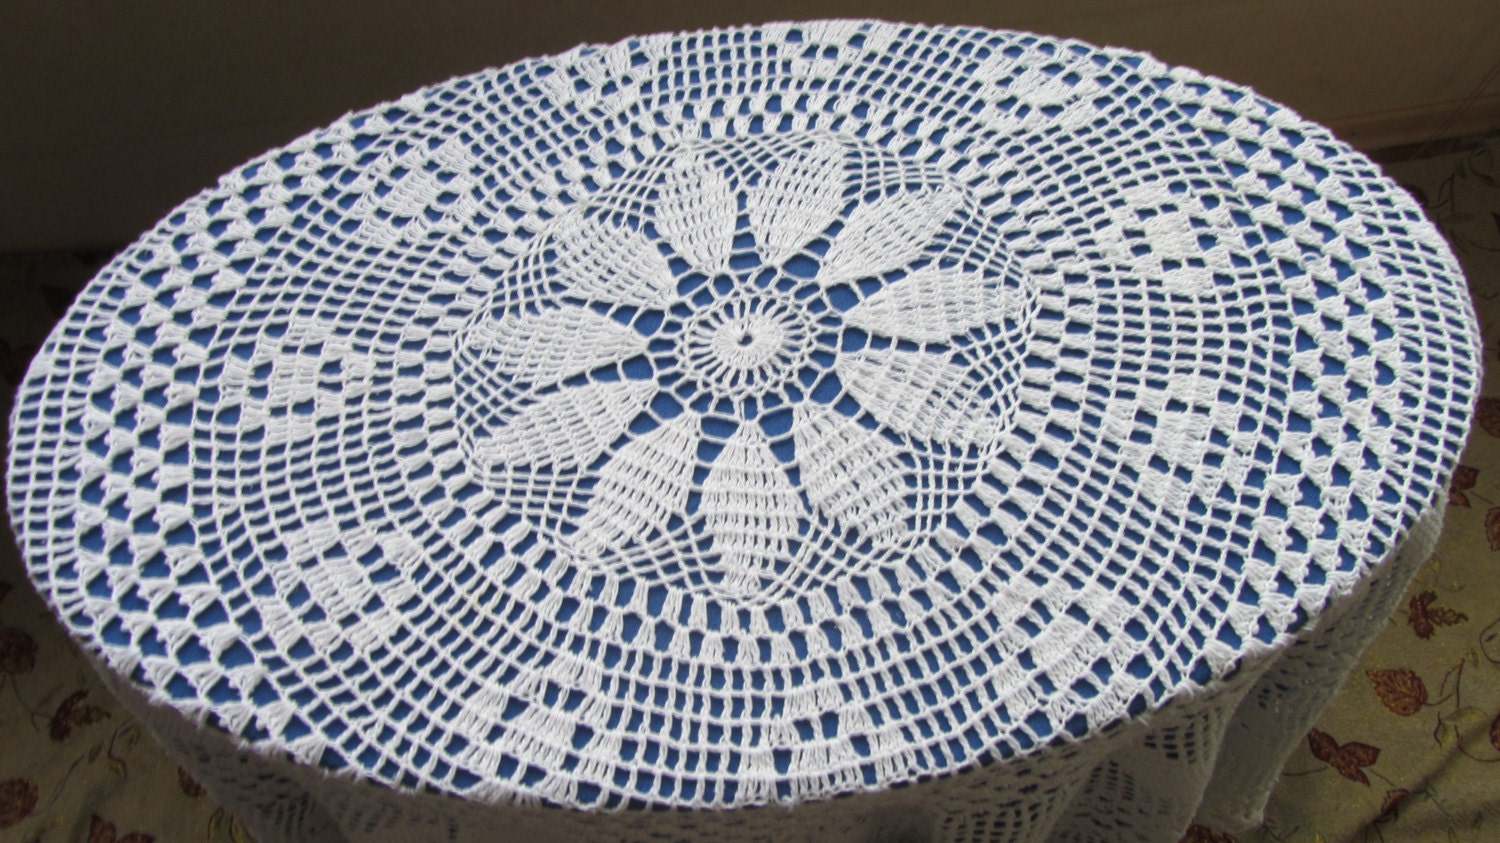 Big Bobbin Lace Round Mats, Lace Decor, Bobbin Lace, Antique Bobbin Lace, Lace t